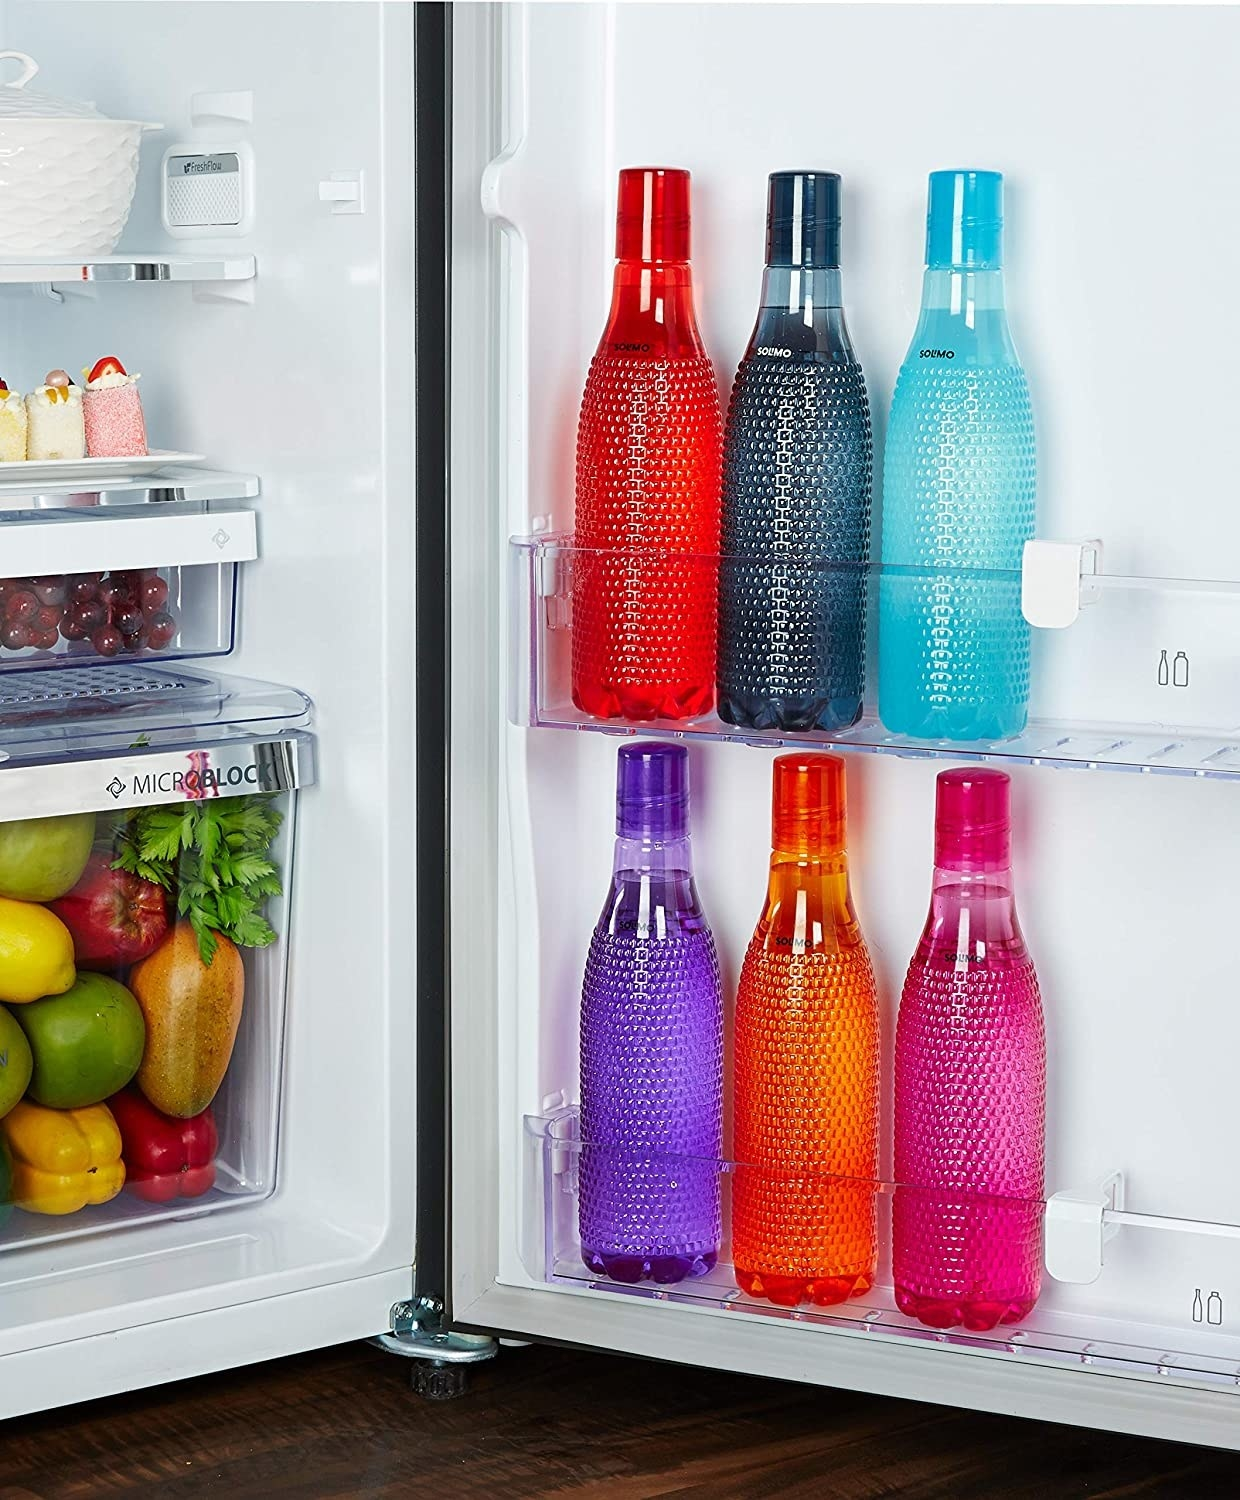 A set of colourful water bottles in a fridge